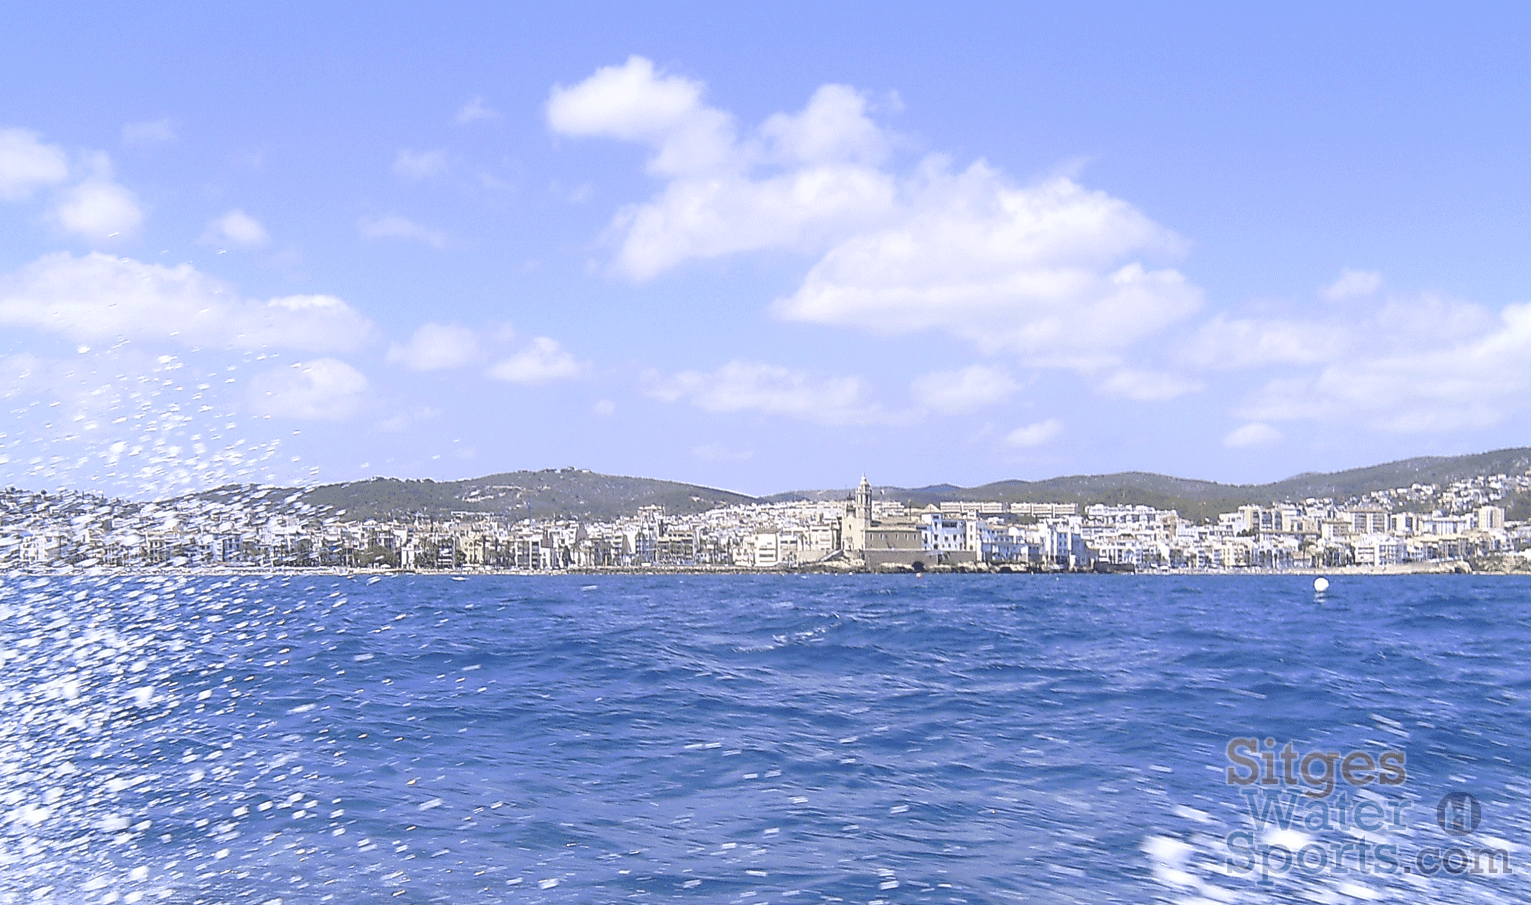 Boat Cruise Ride of Sitges